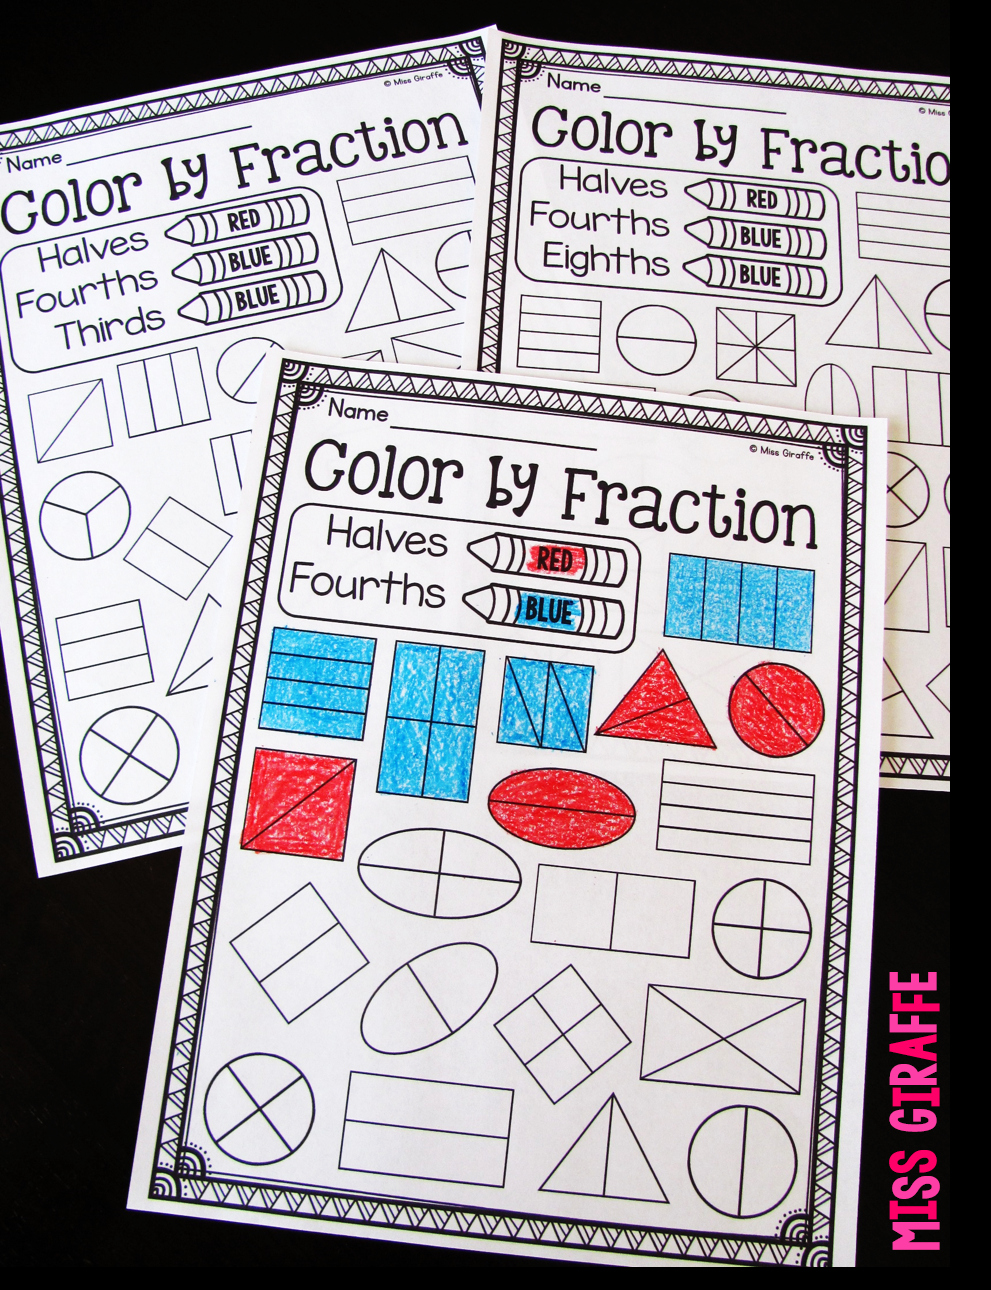 Fractions Worksheets First Grade Awesome Miss Giraffe S Class Fractions In First Grade